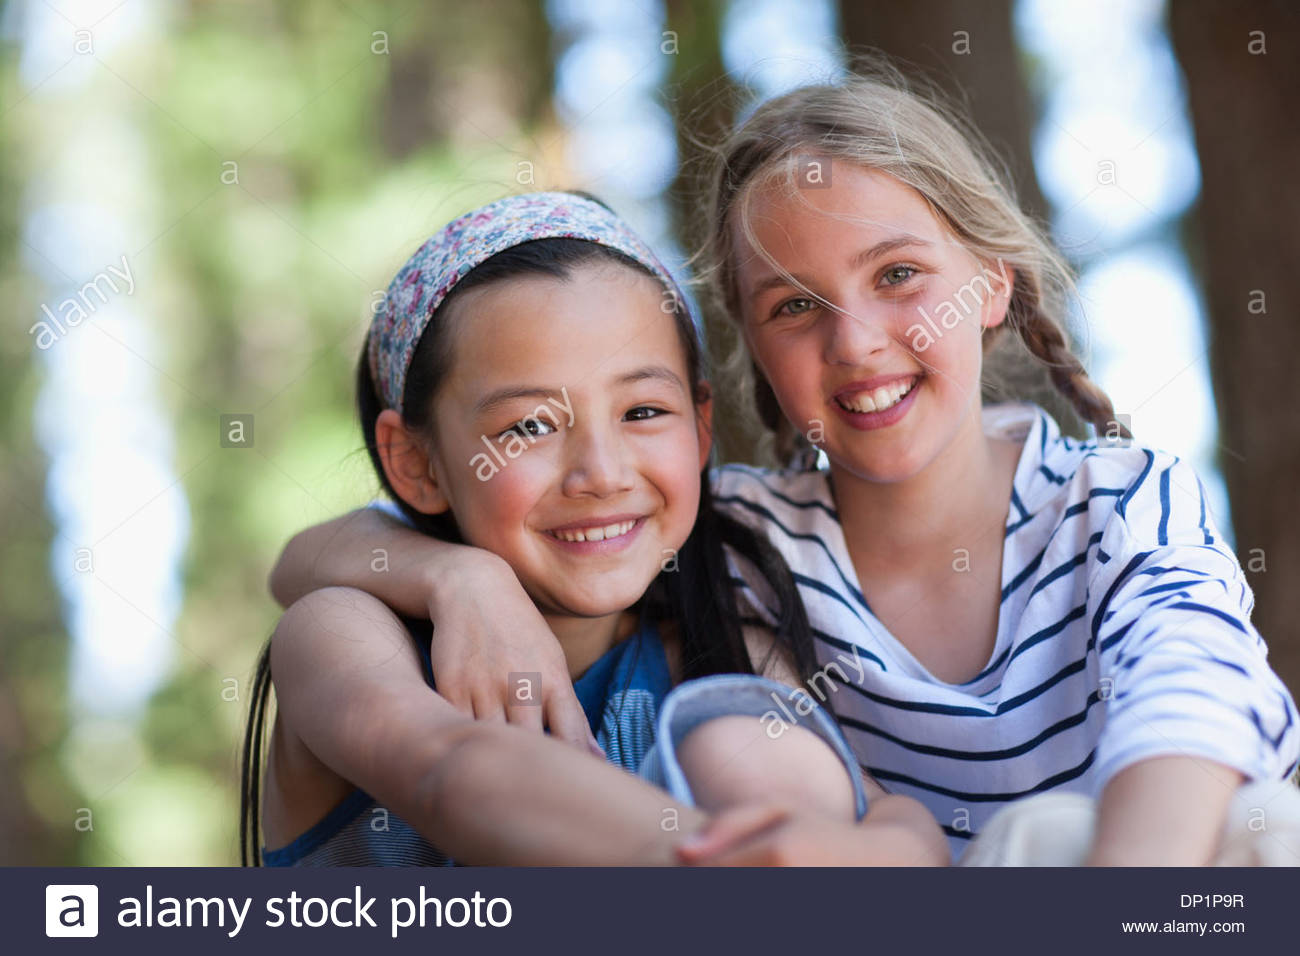 Two girls, portrait - Stock Image